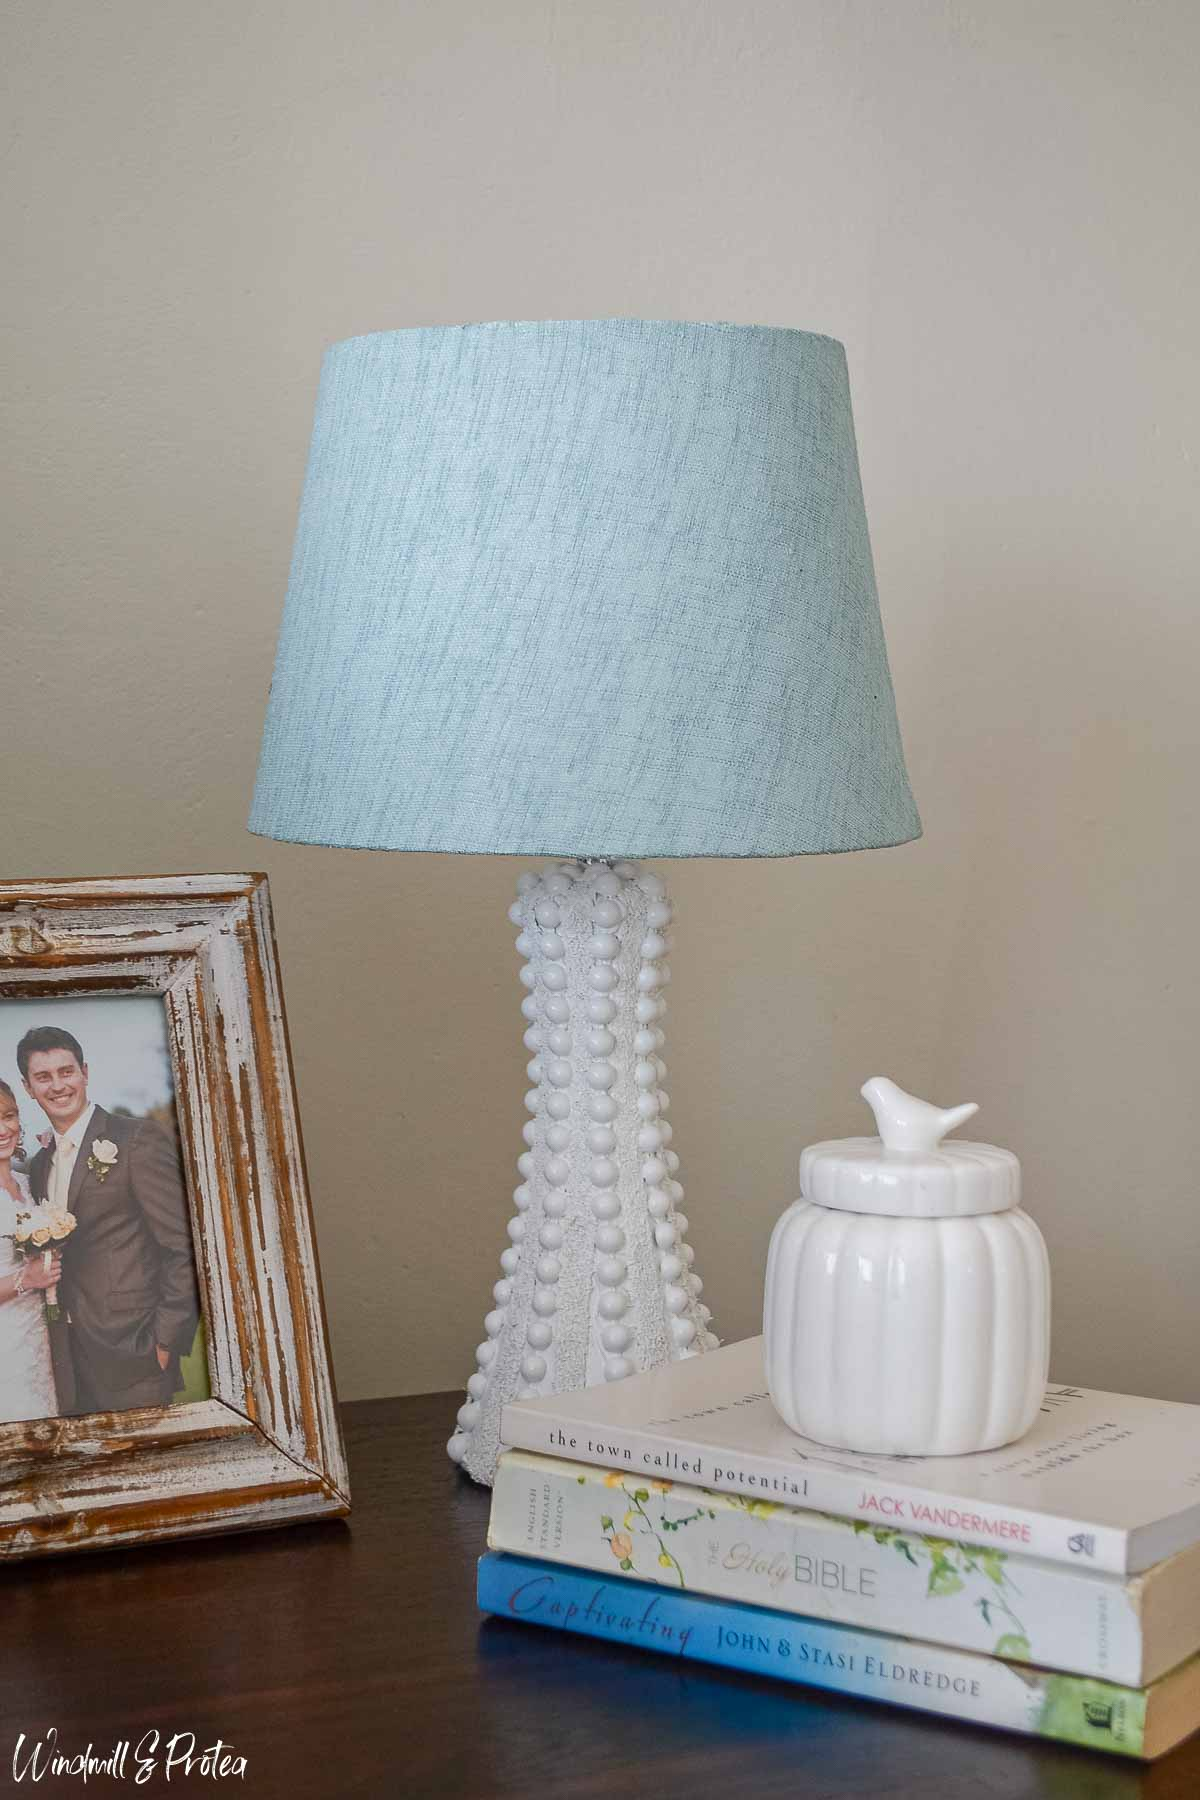 Hobnail table lamp, books and picture